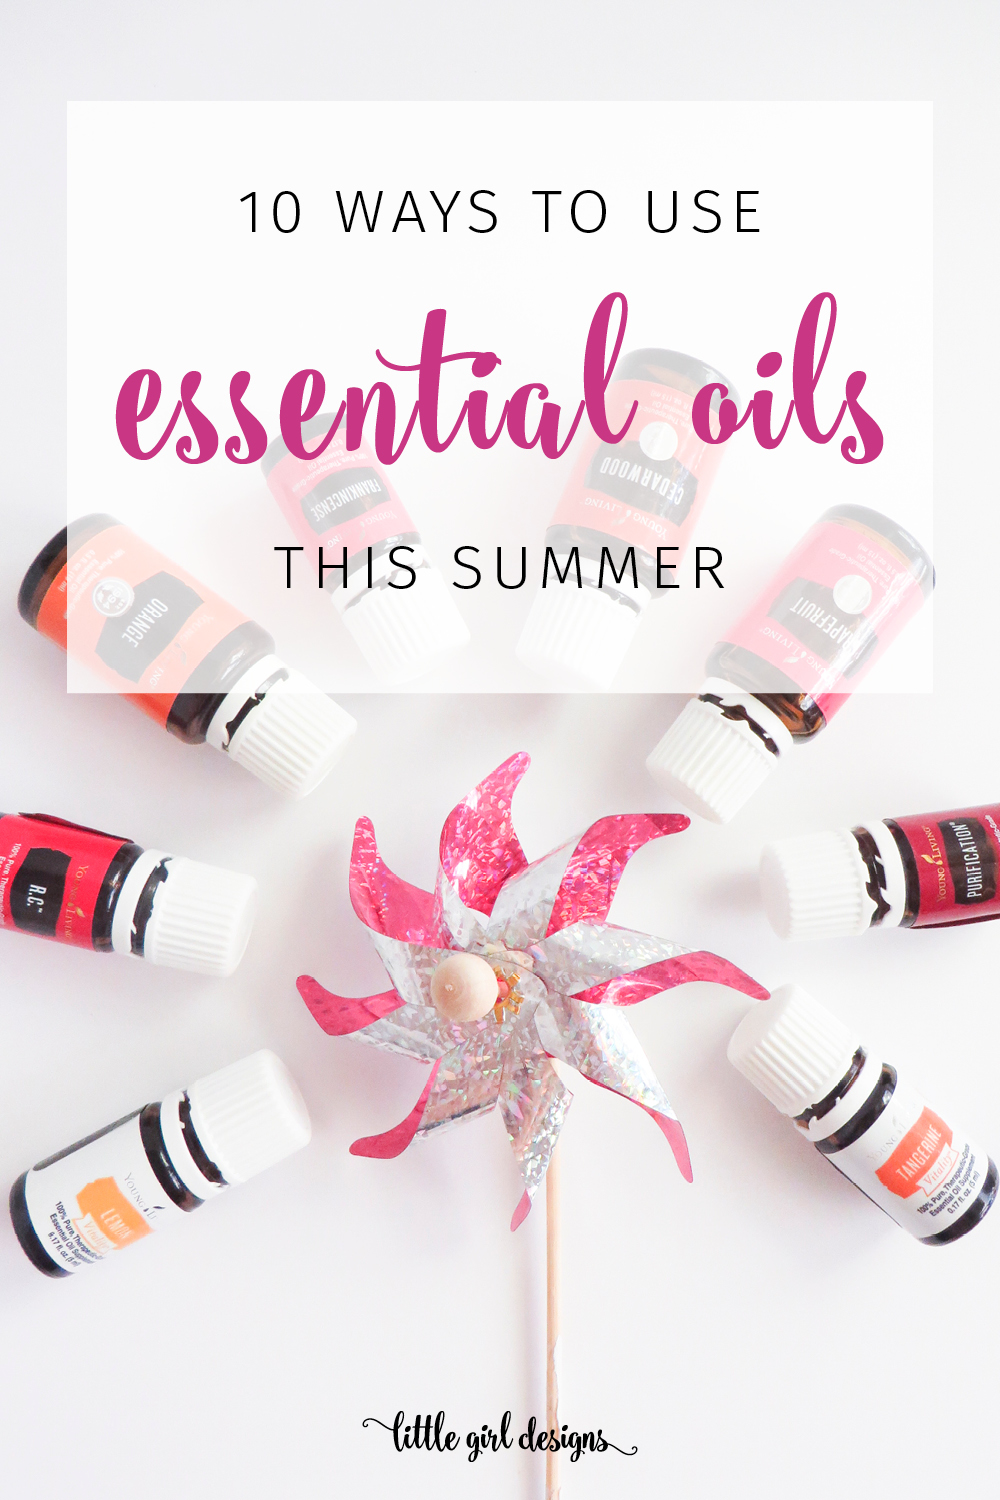 Several easy ways to use essential oils this summer! I never thought of some of these ideas!